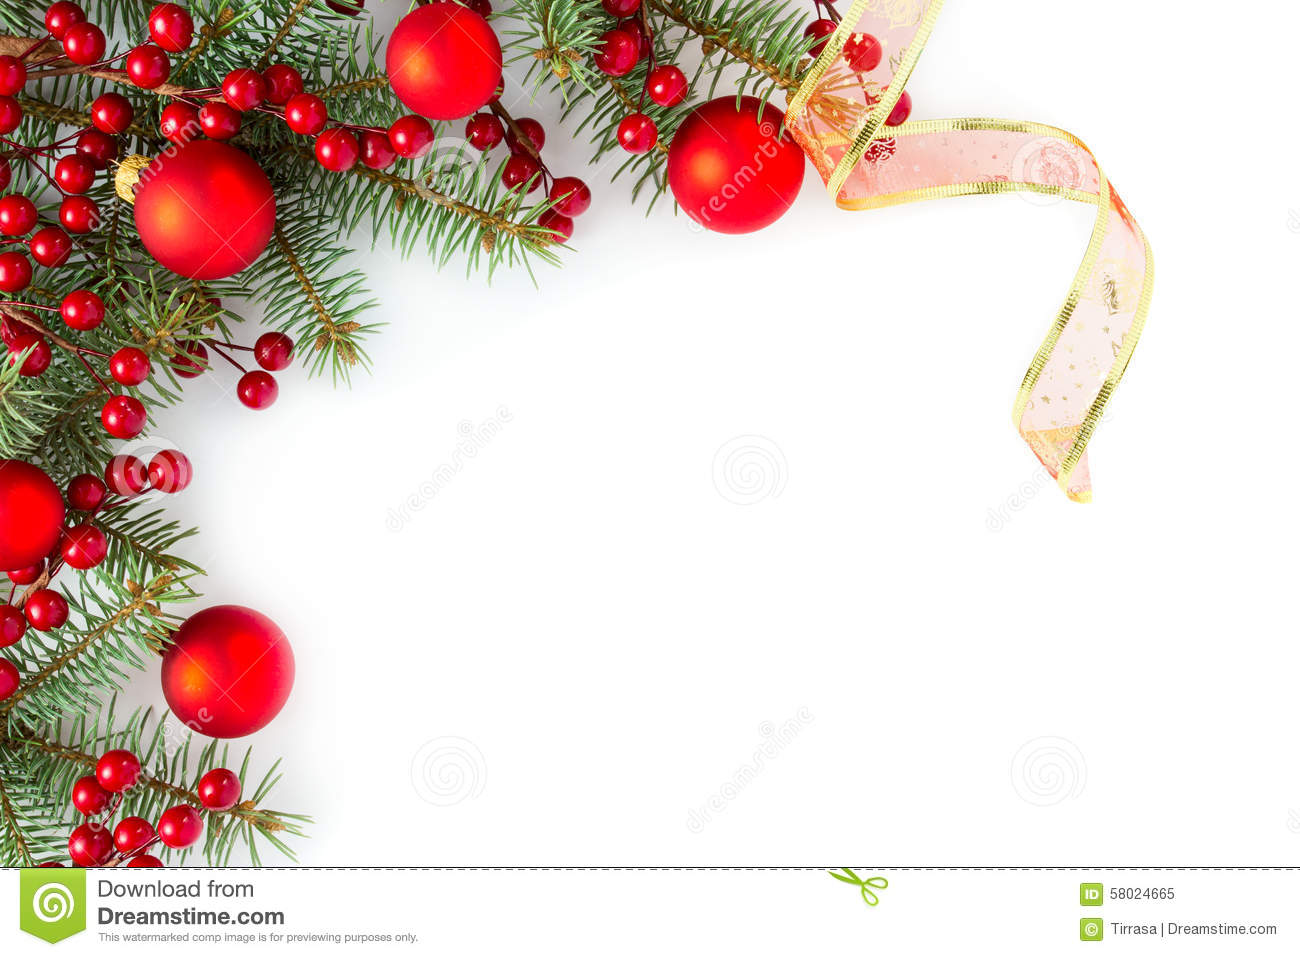 Free Christmas Borders.Christmas Border Stock Image Image Of Card Coniferous